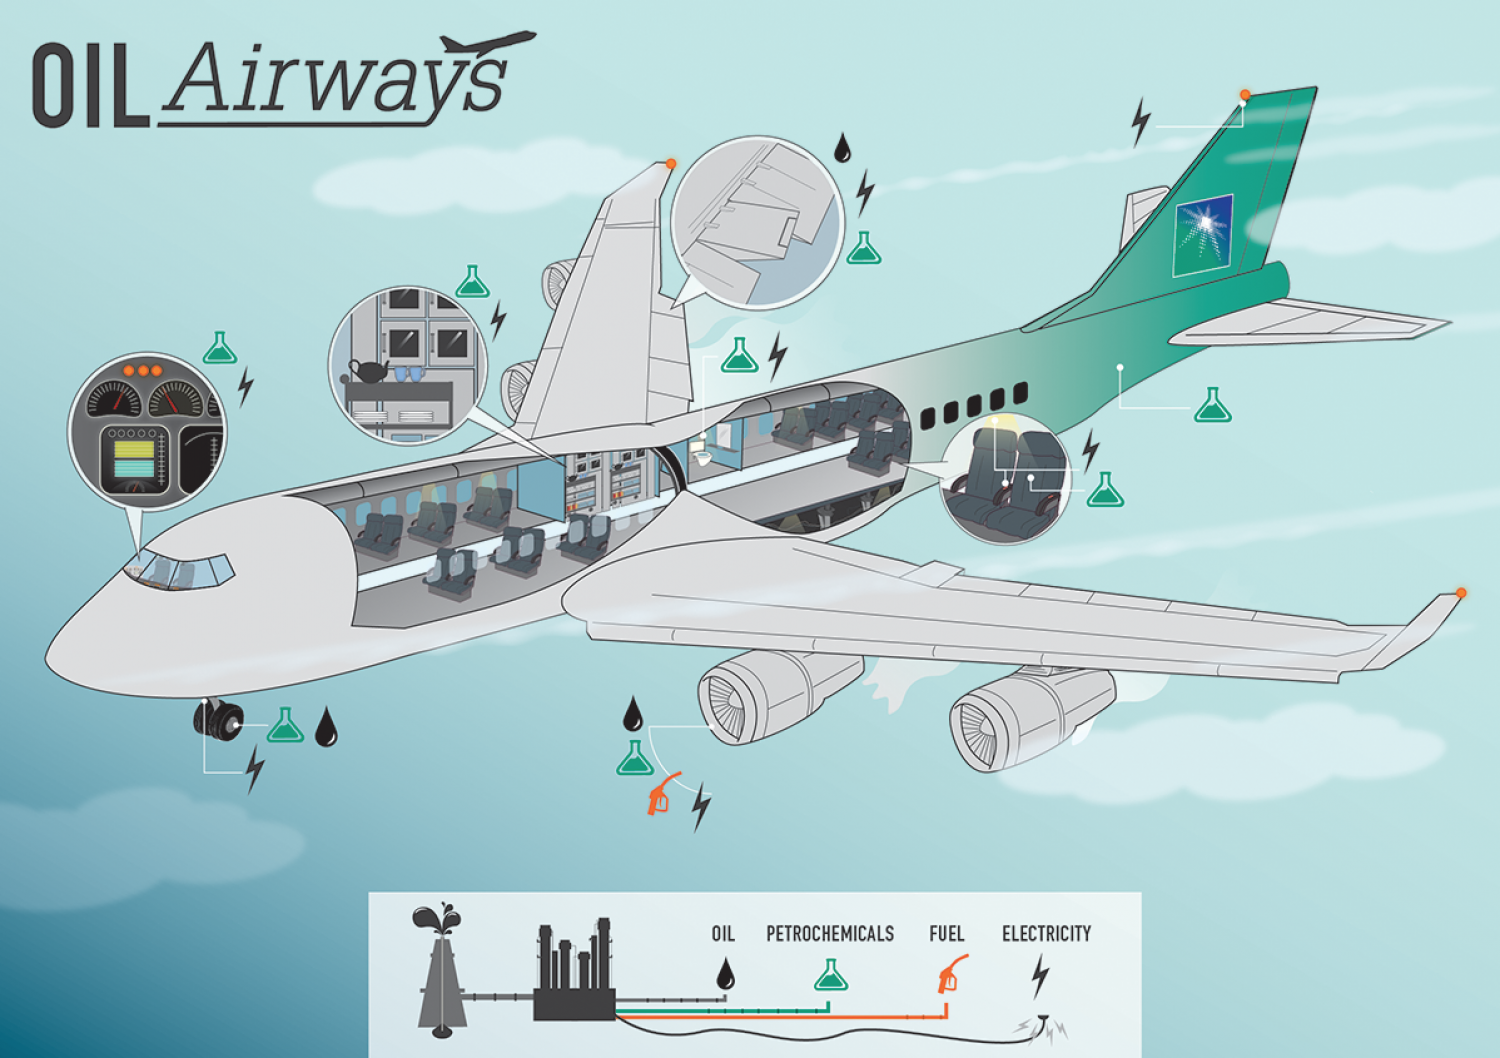 Oil Airways Infographic Infographic